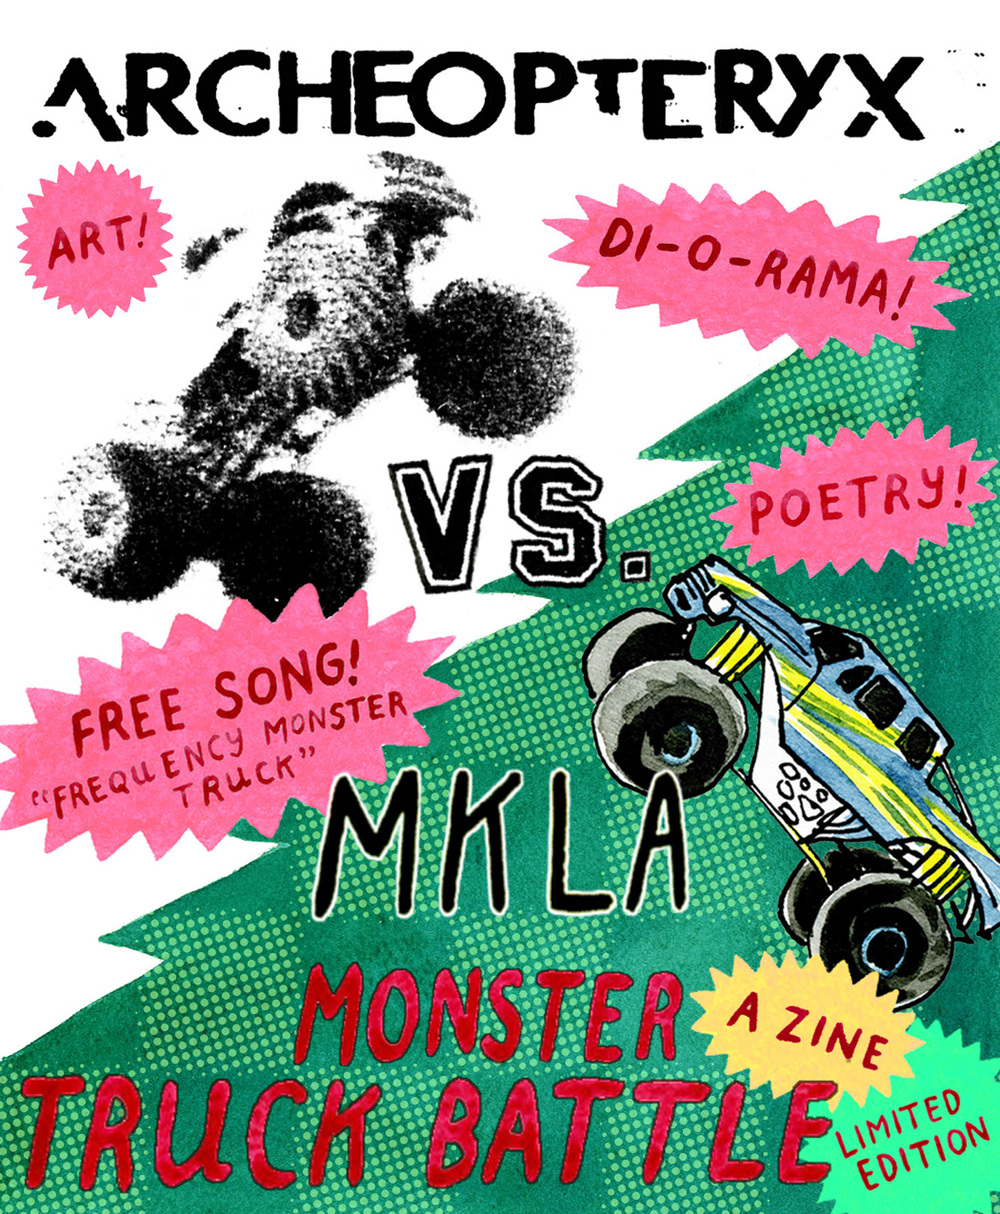 Archeopteryx vs. MKLA: Monster Truck Battle Zine